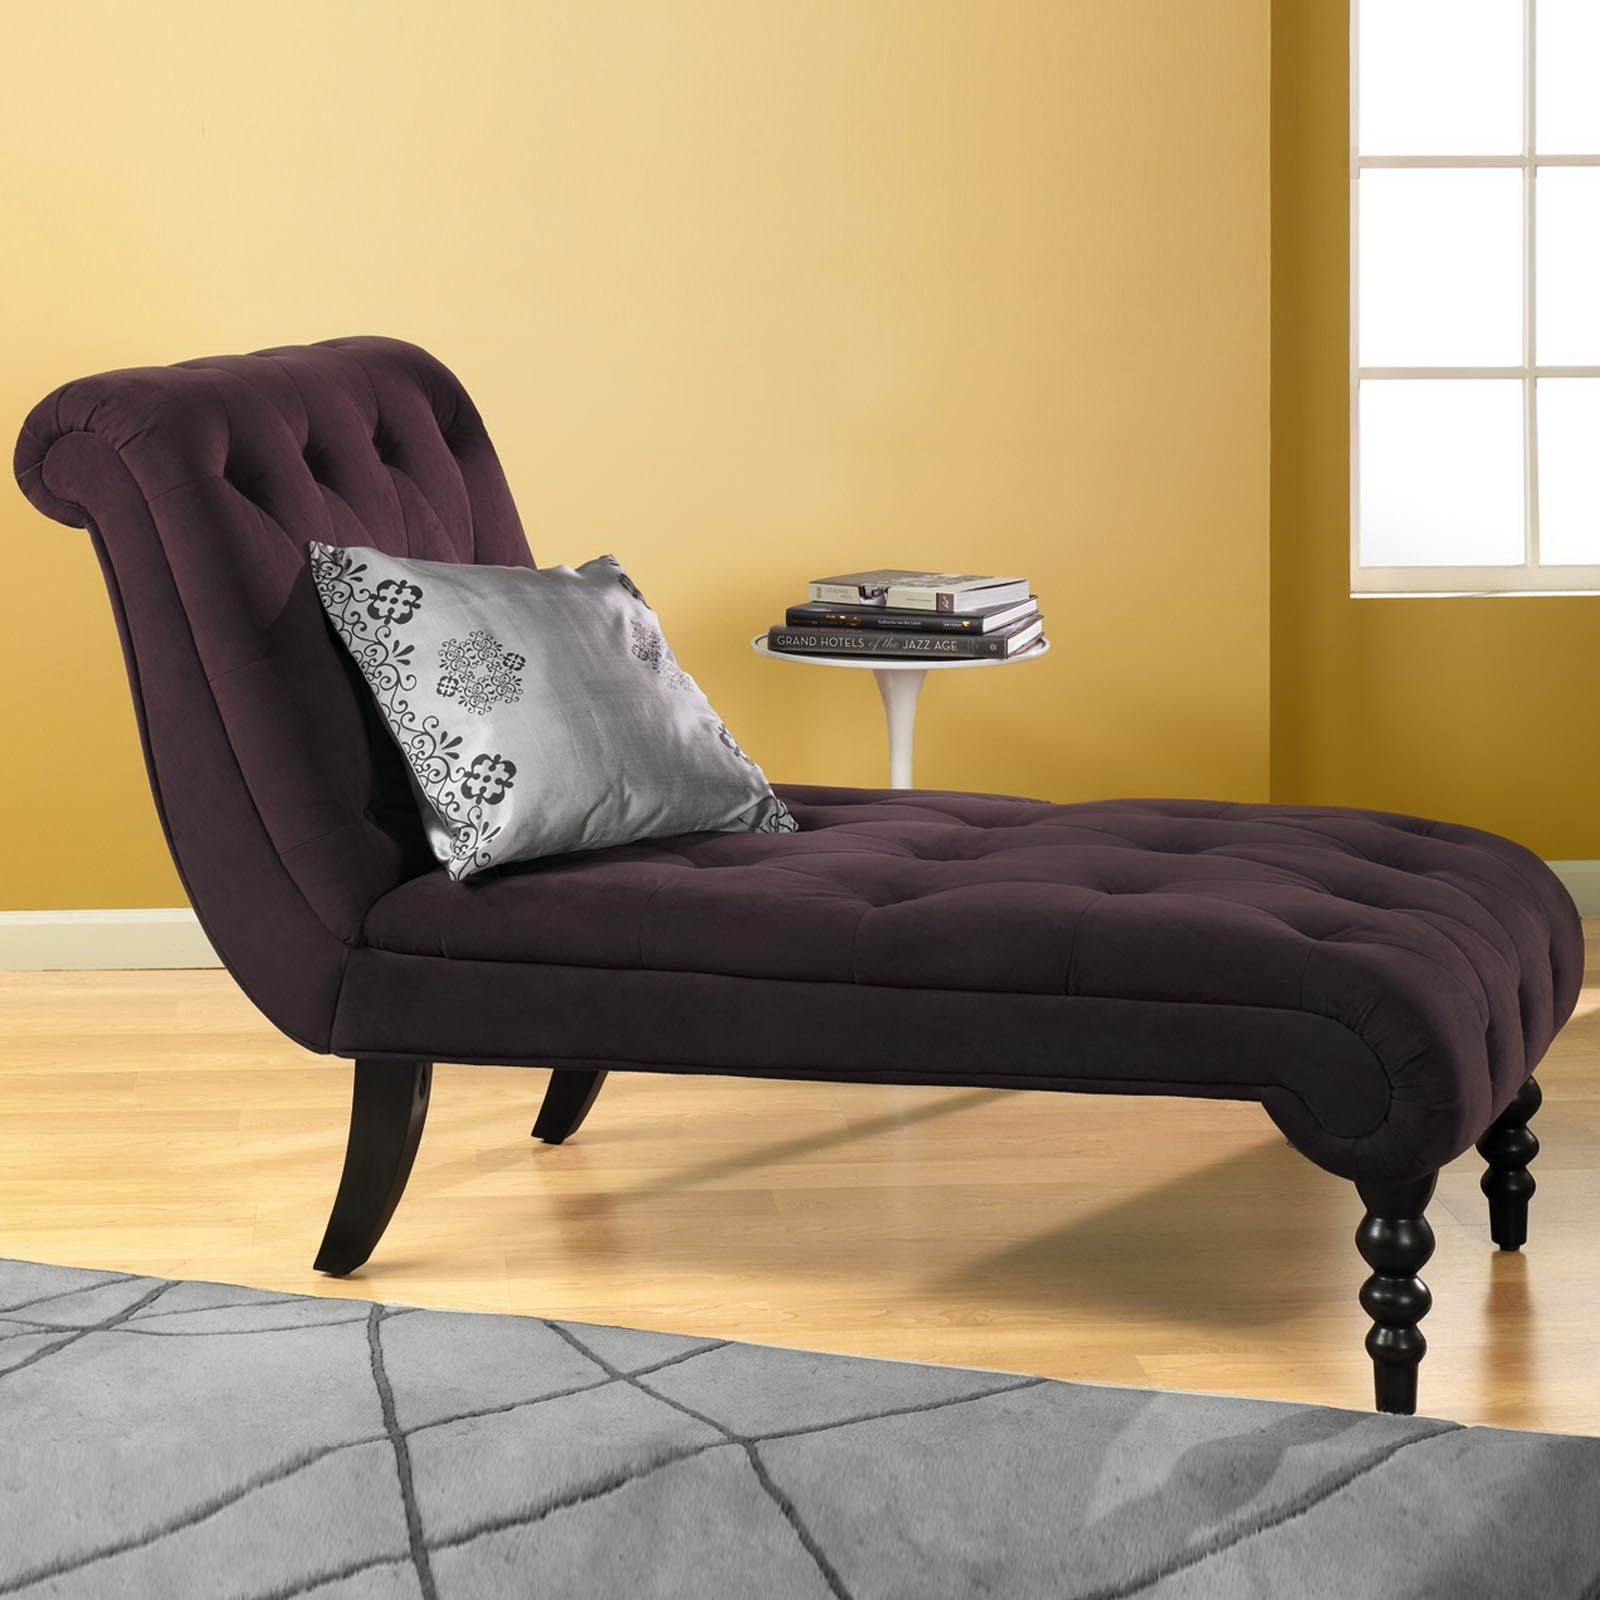 Sofas Center Furniture Chaisege Chase Sofager Chair Couch With Pertaining To Wide Sofa Chairs (Image 11 of 15)